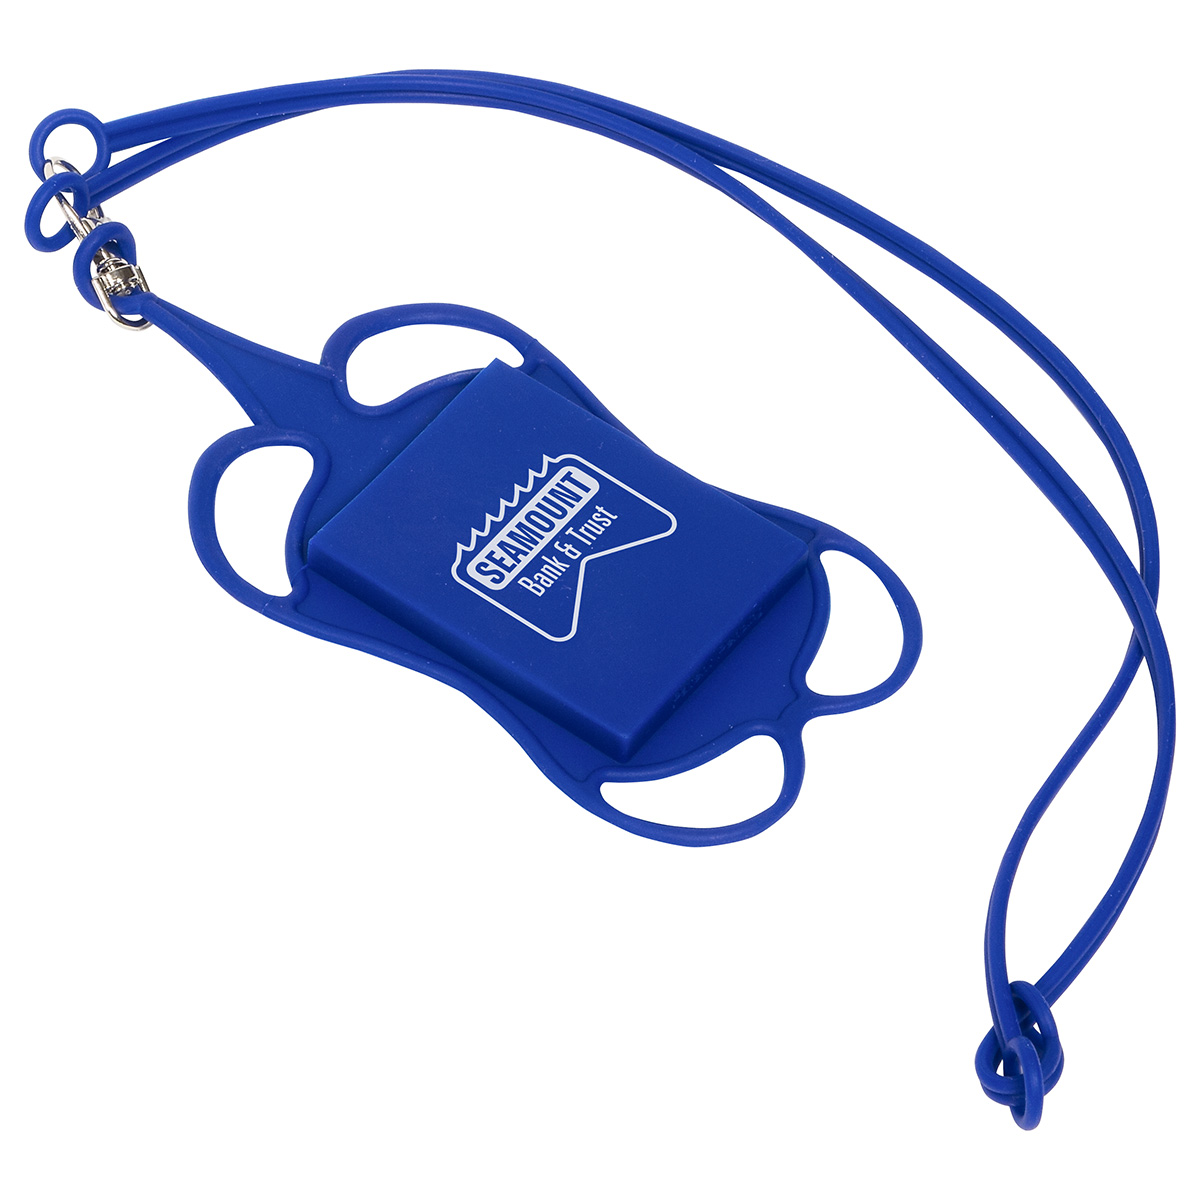 Silicone Lanyard Smart Phone & Card Holder, WCP-LC16 - 1 Colour Imprint